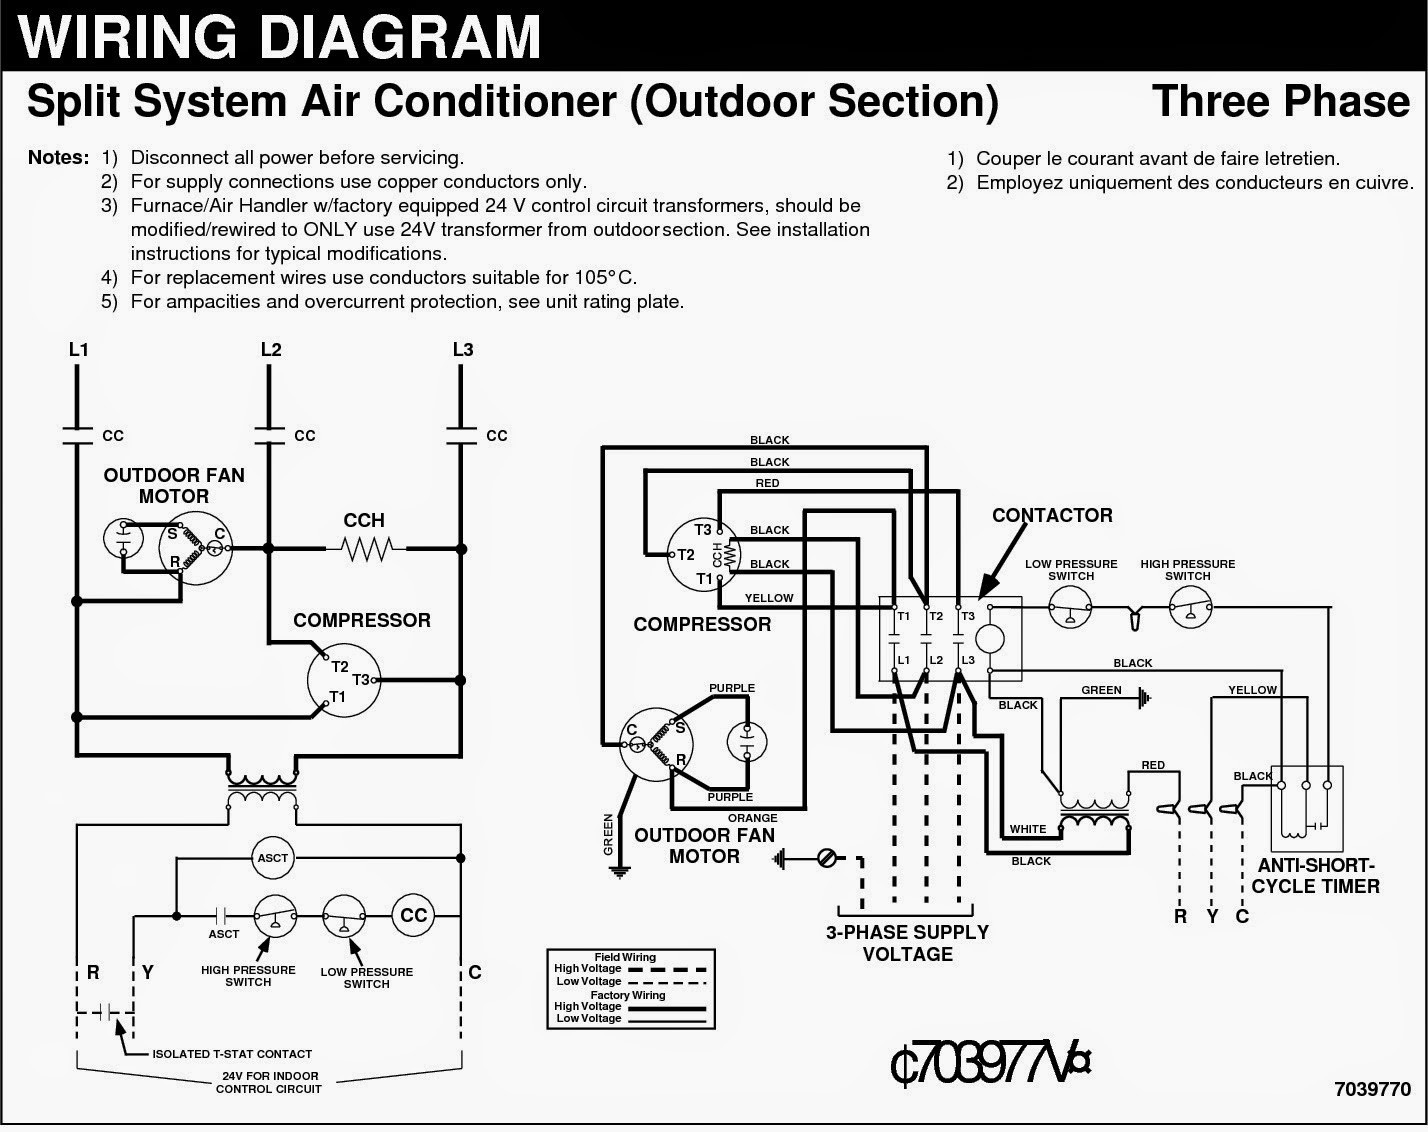 Simple Wiring Diagrams 480v Explained Plug Diagram Water Heater 3 Phase Trusted U2022